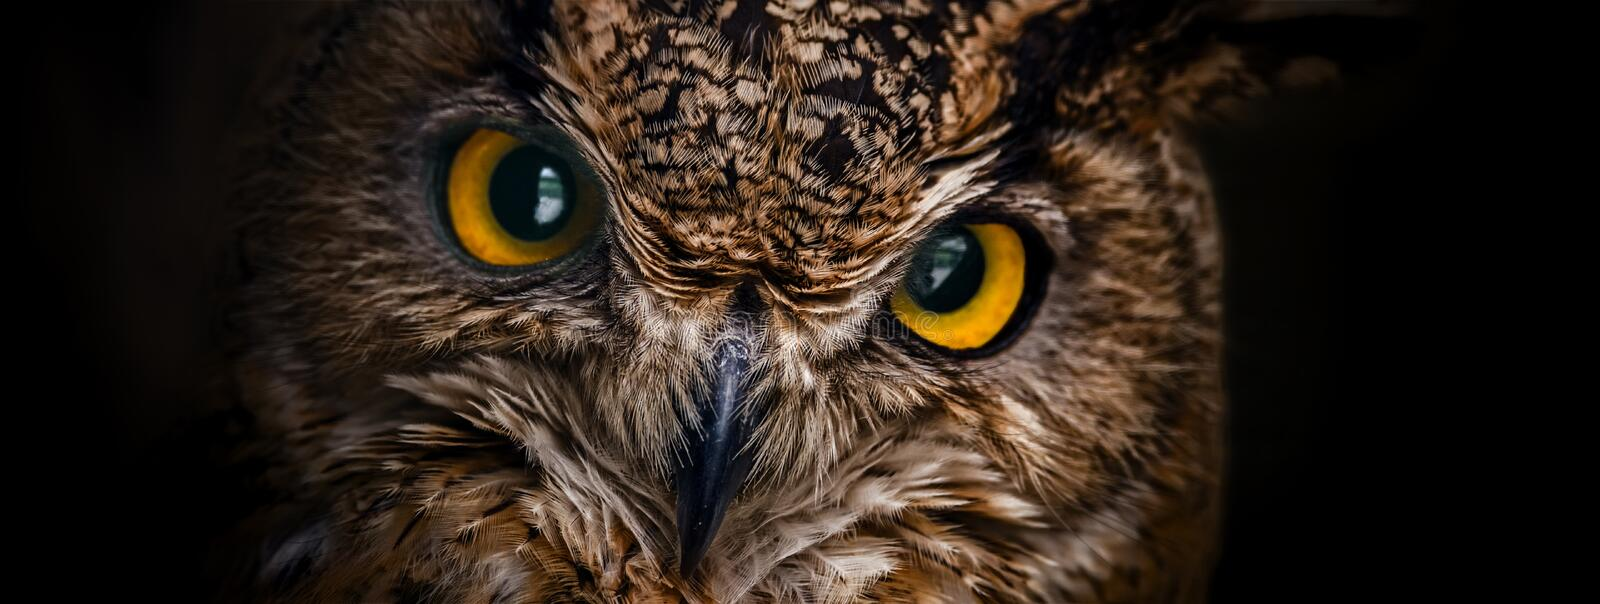 Yellow eyes of horned owl close up on a dark background stock images